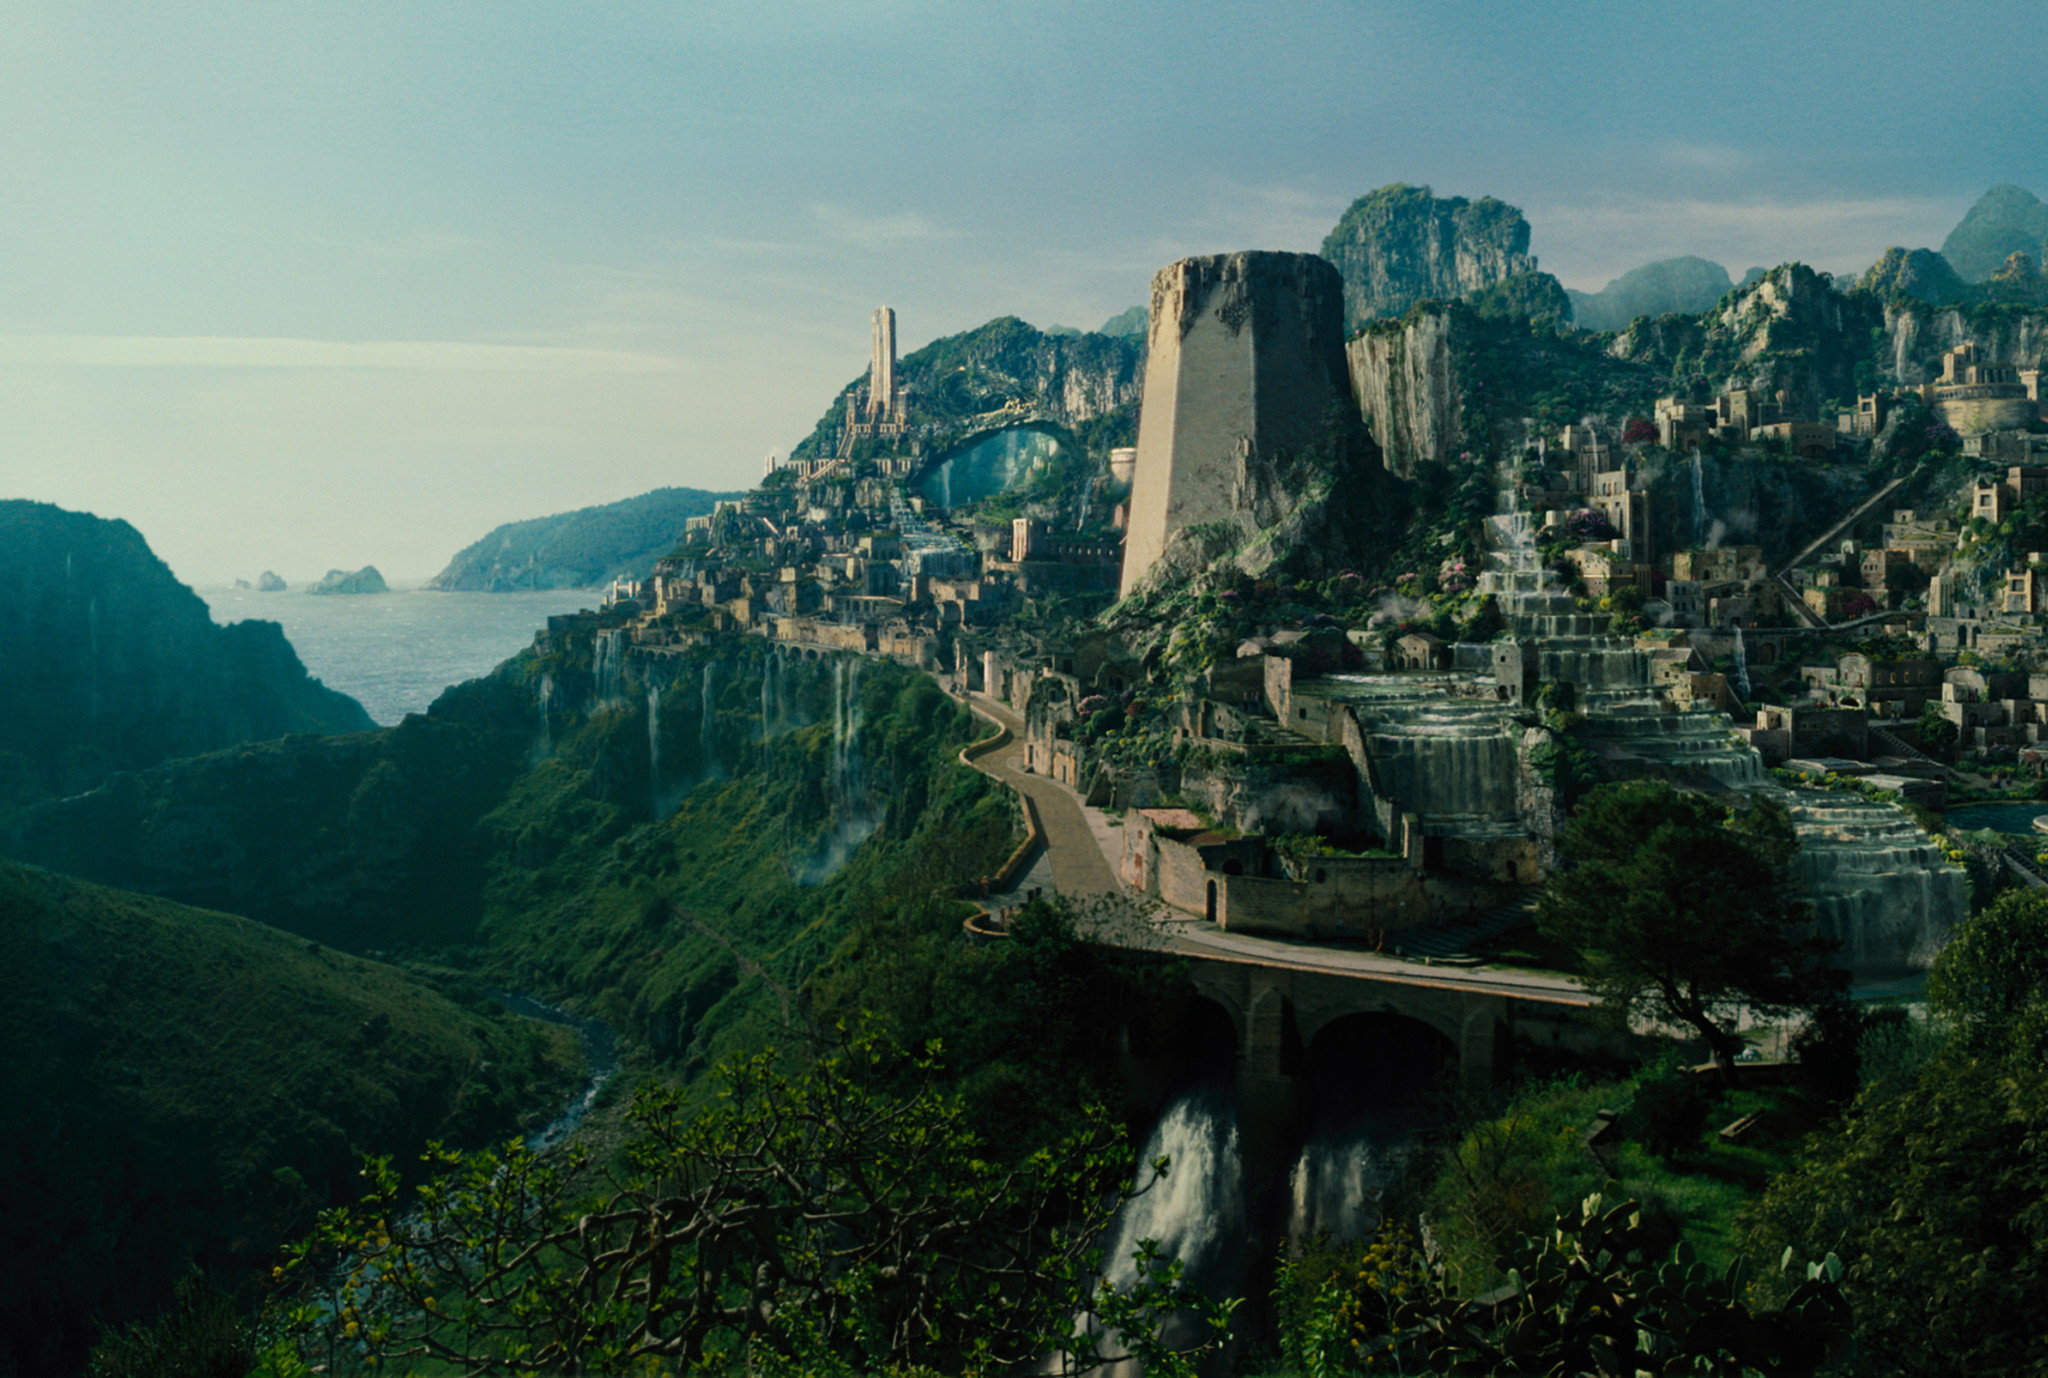 The island paradise of Themyscira is home of the Amazons and Wonder Woman's homeland.